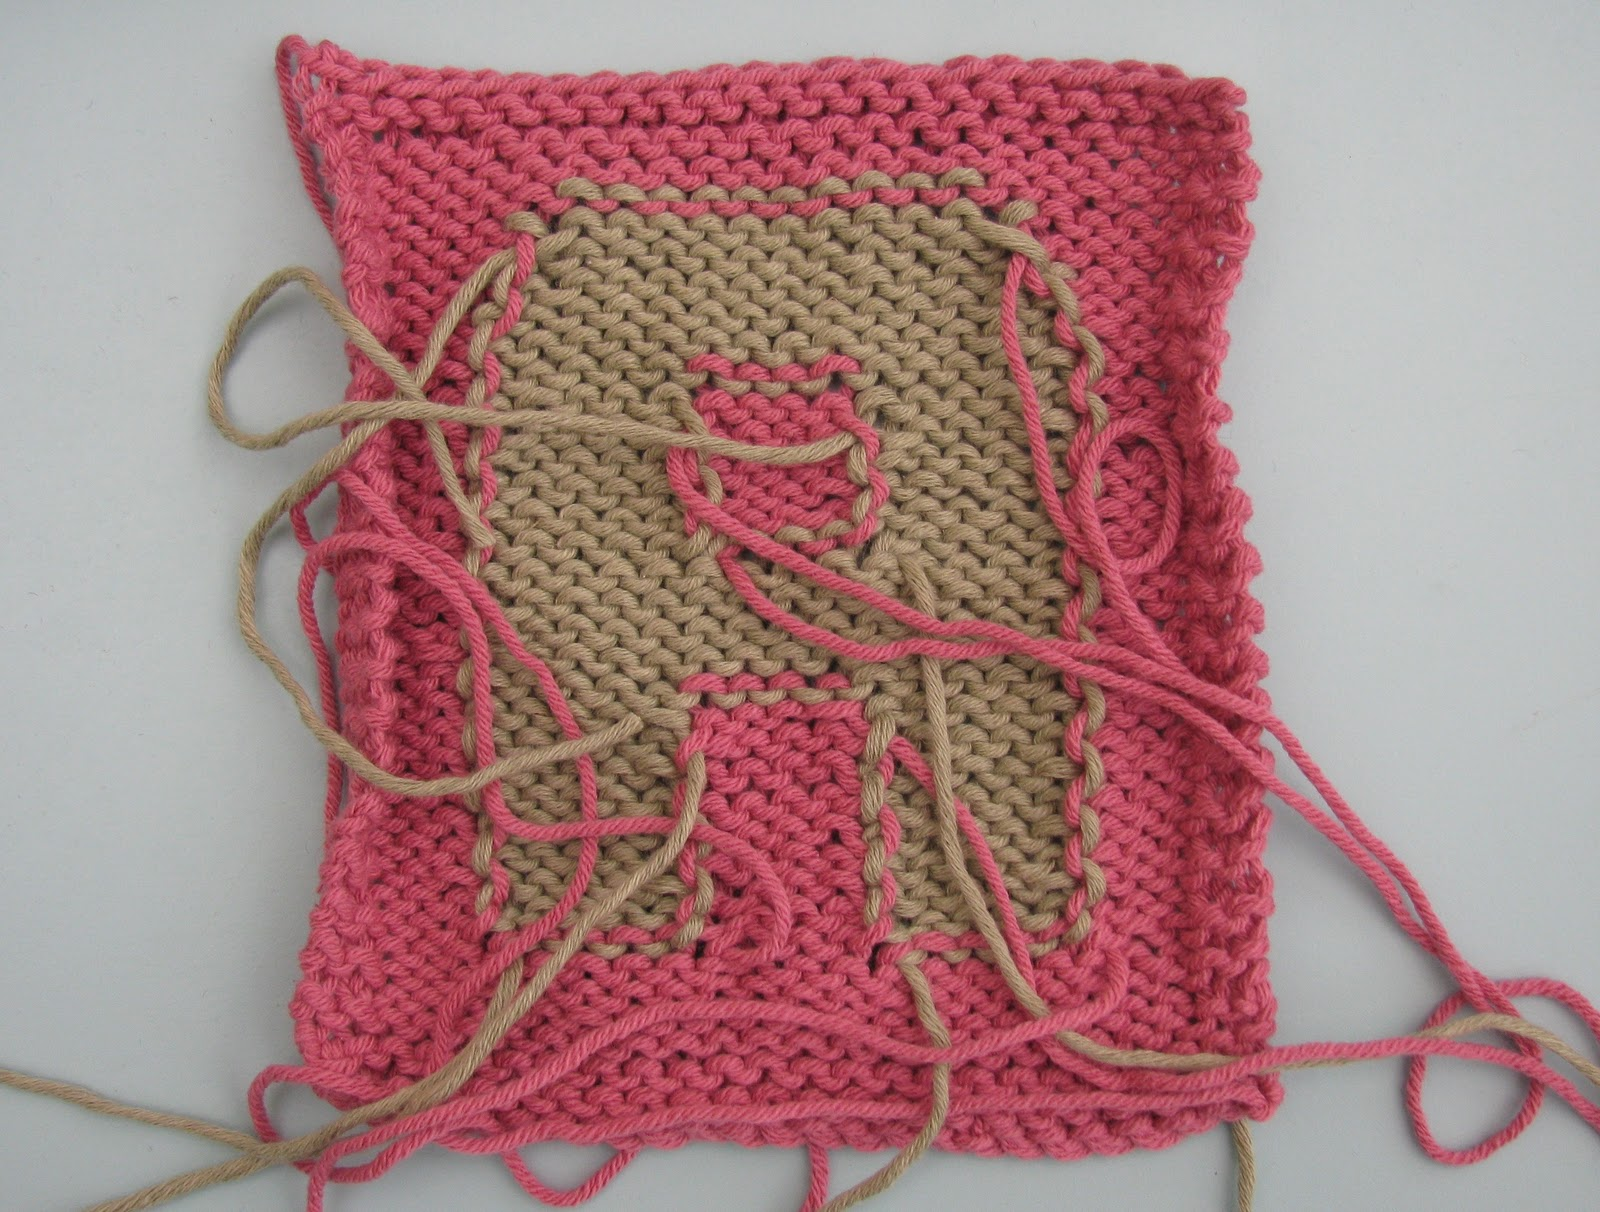 intarsia knitting tip 9 - weave the colours into the back of the same coloured flhseey